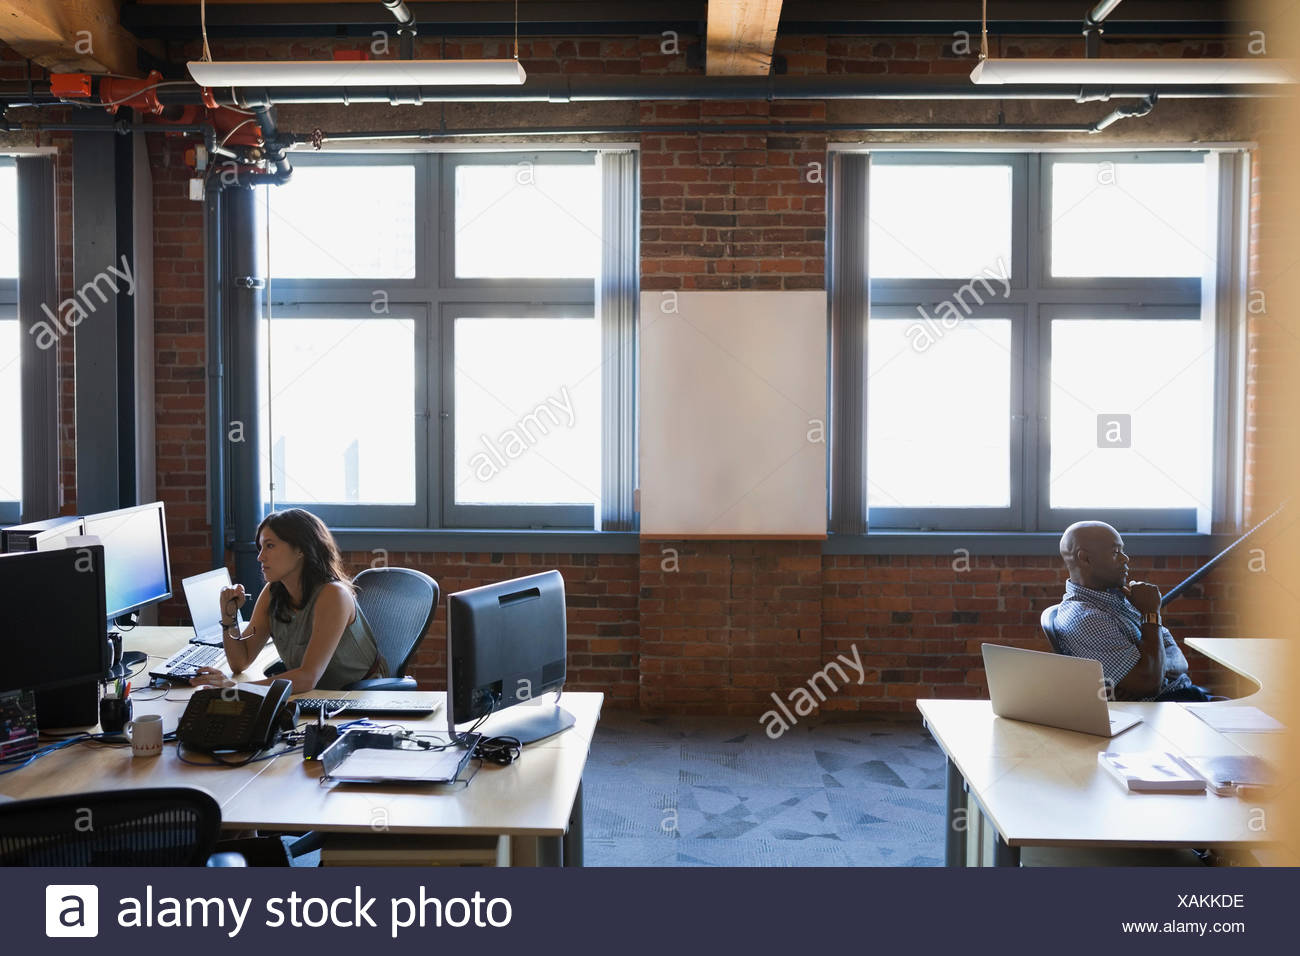 Business people working at desks in office - Stock Image